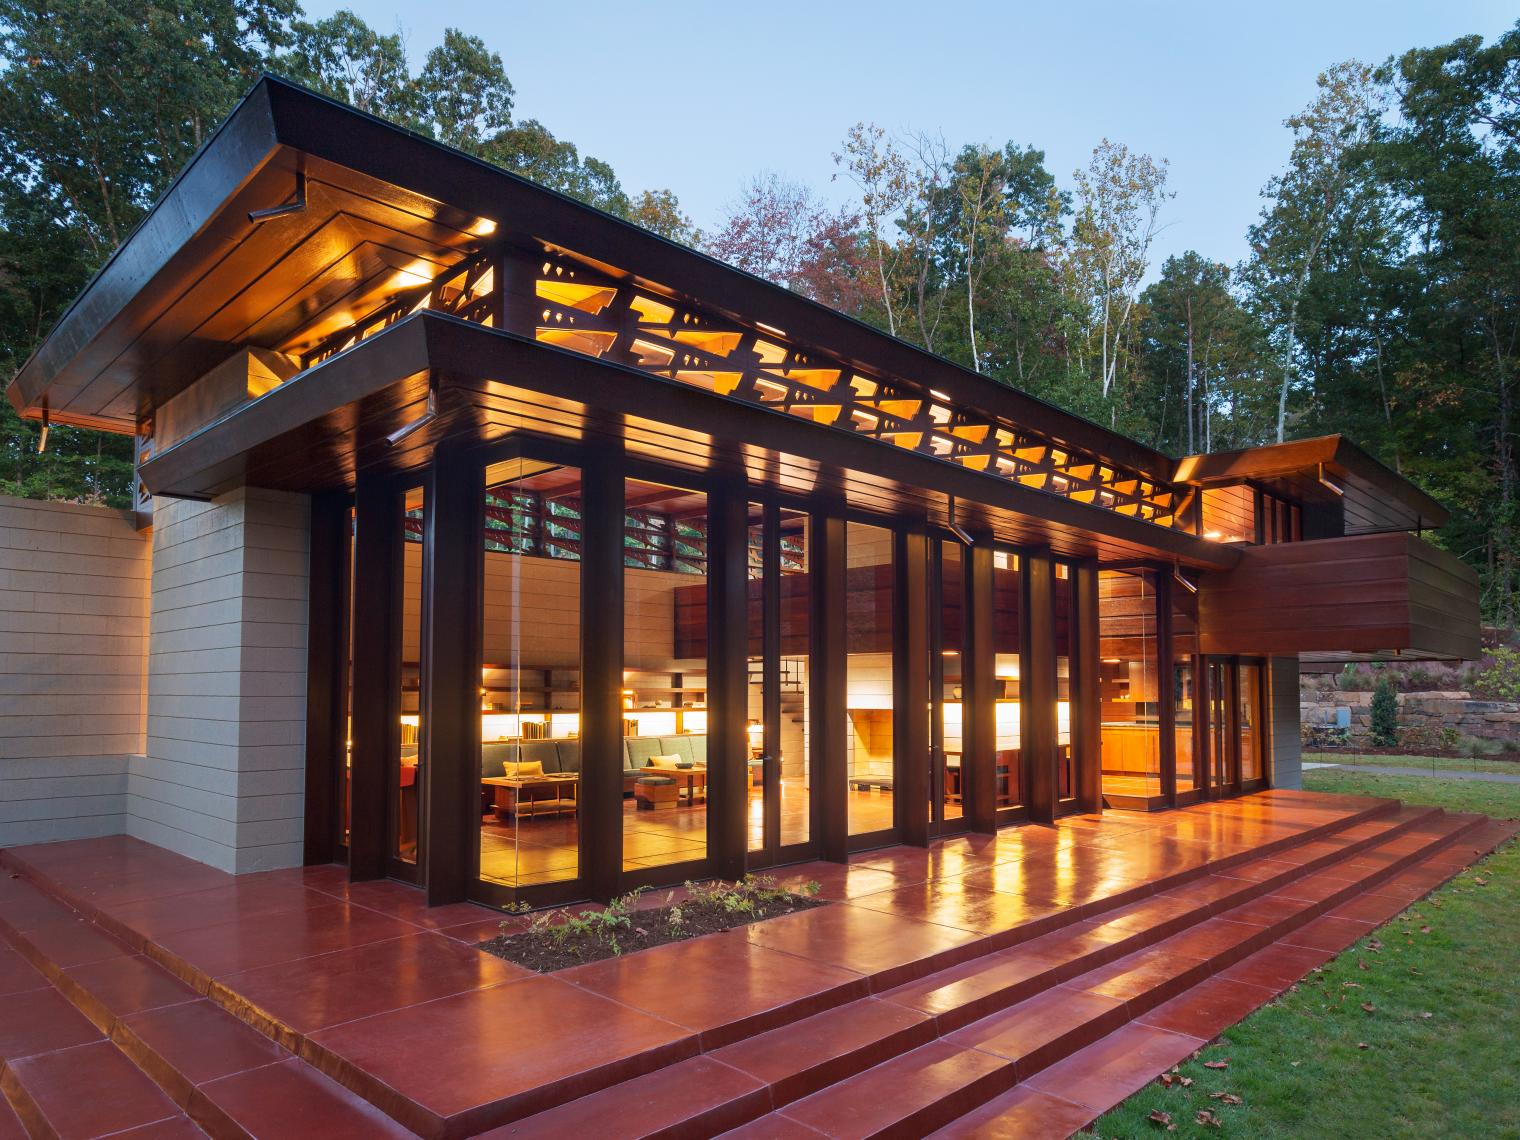 Frank Lloyd Wright Inspired Houses you can sleep inside some of these famous frank lloyd wright